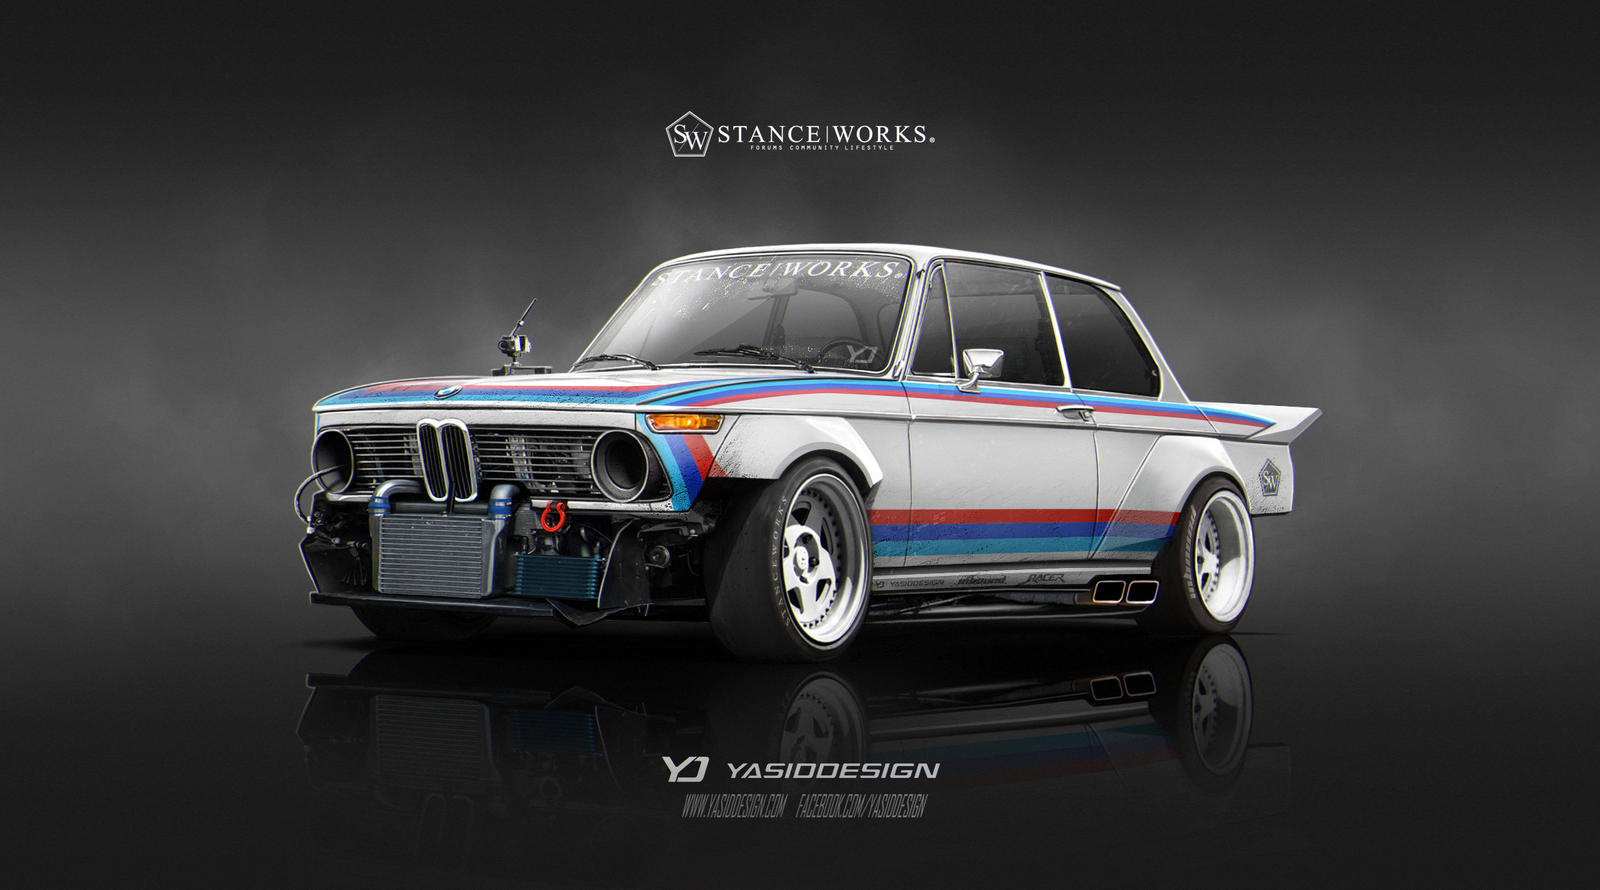 Stanceworks 1974 Bmw 2002 By Yasiddesign On Deviantart